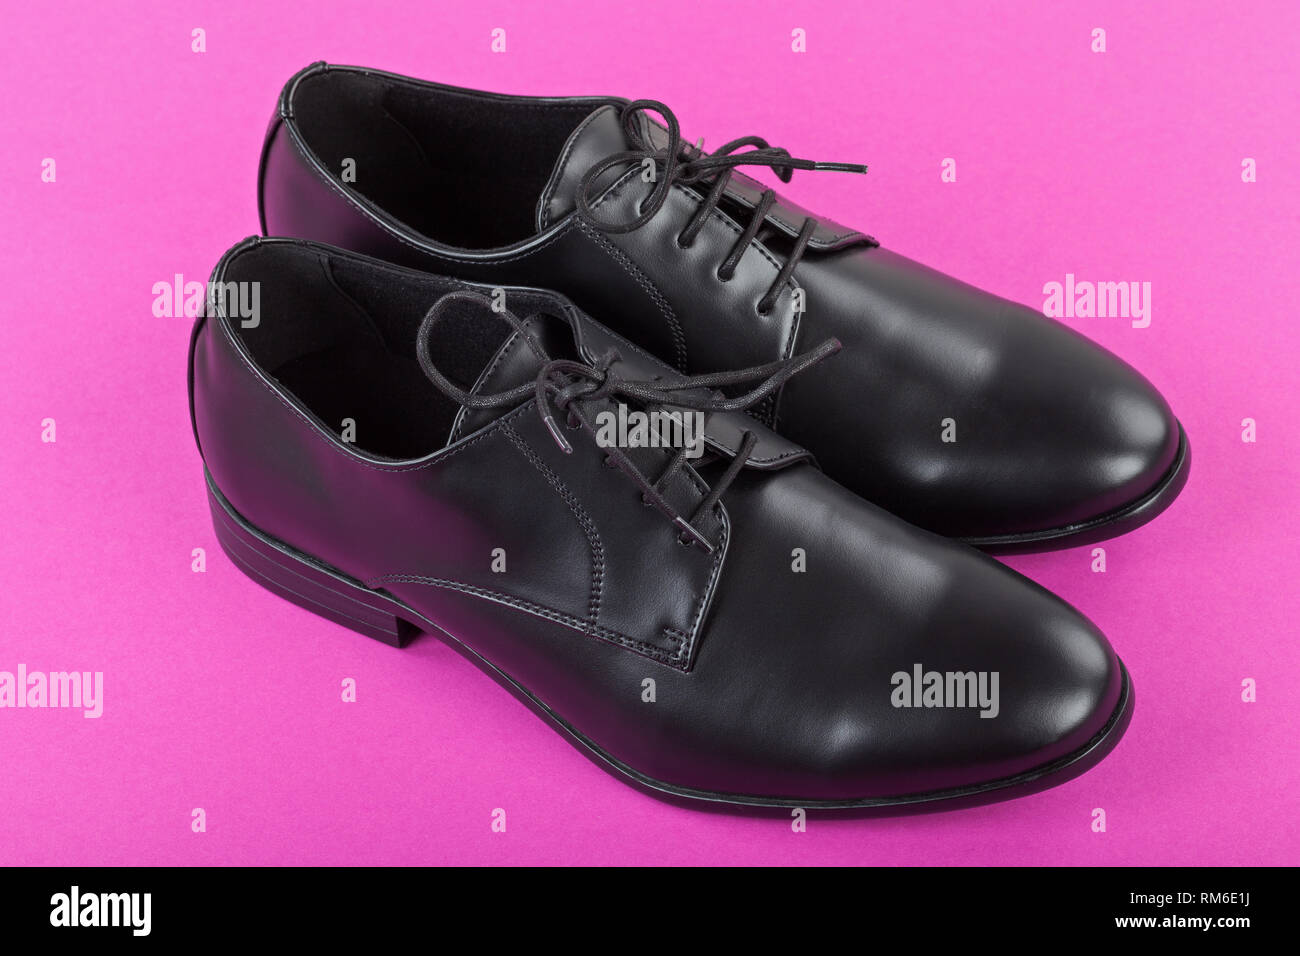 Close up picture of mens footwear Black leather elegant shoes on pink background Stock Photo